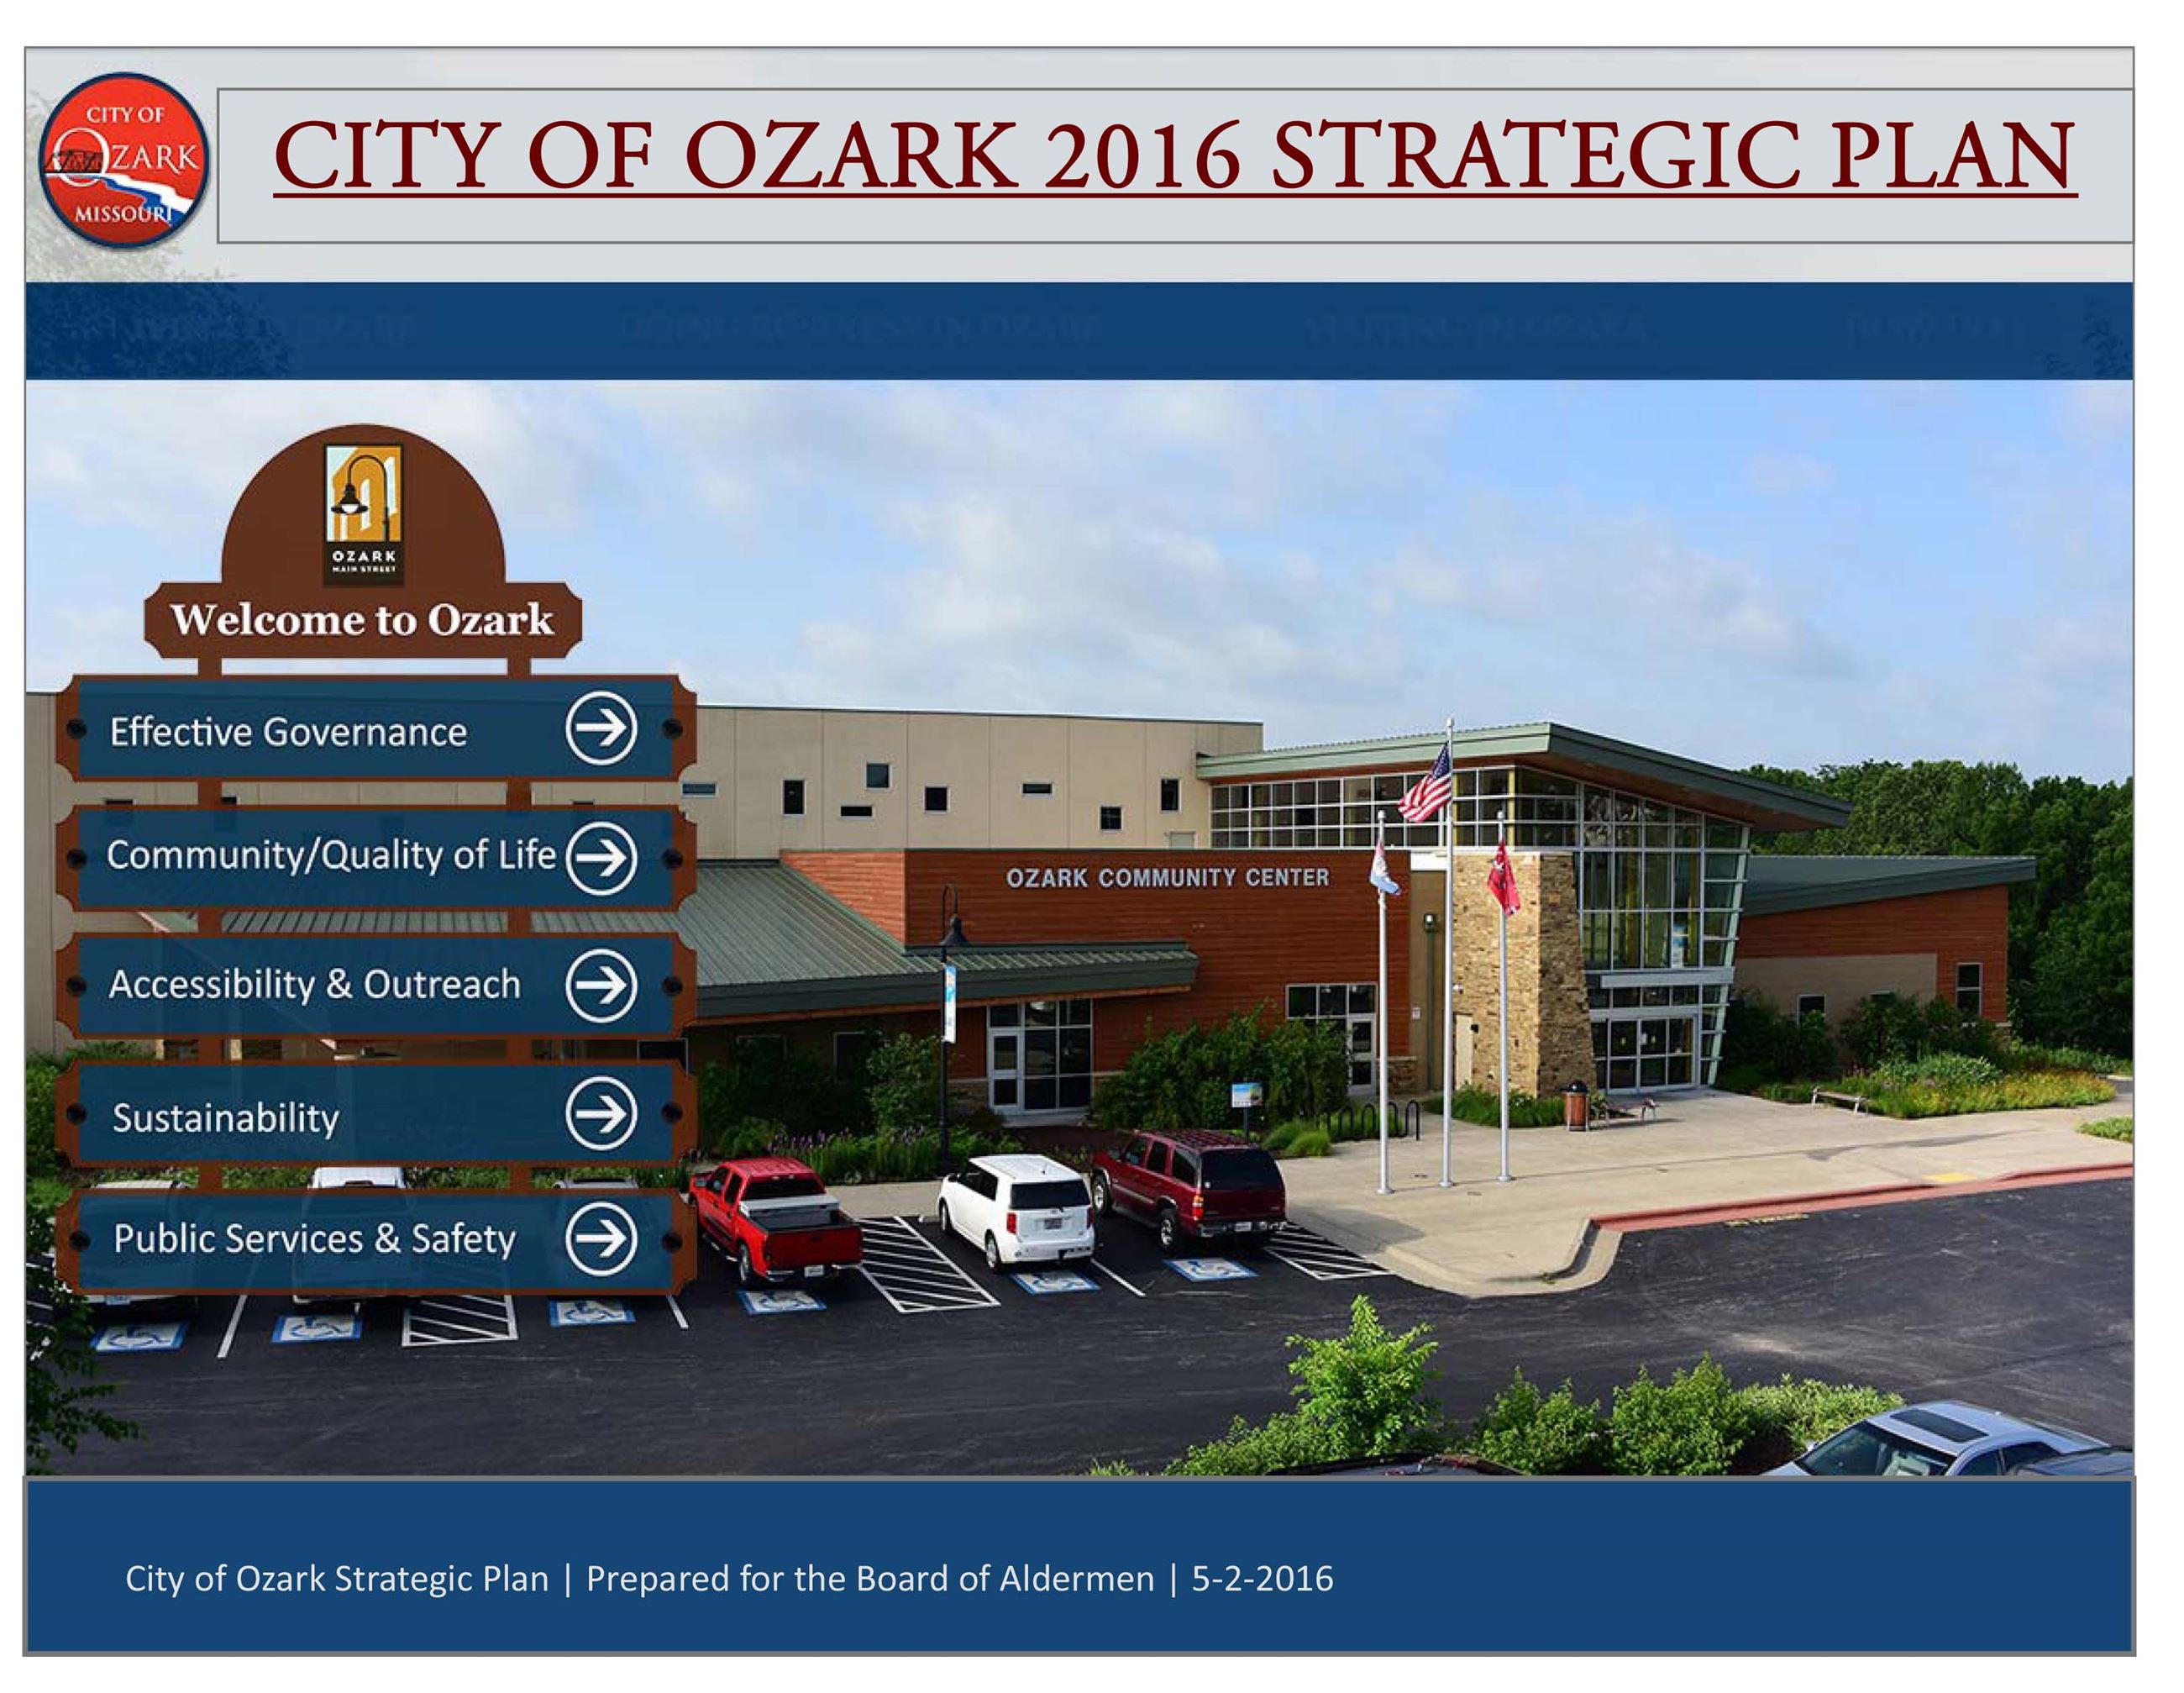 2016 OZARK STRATEGIC PLAN